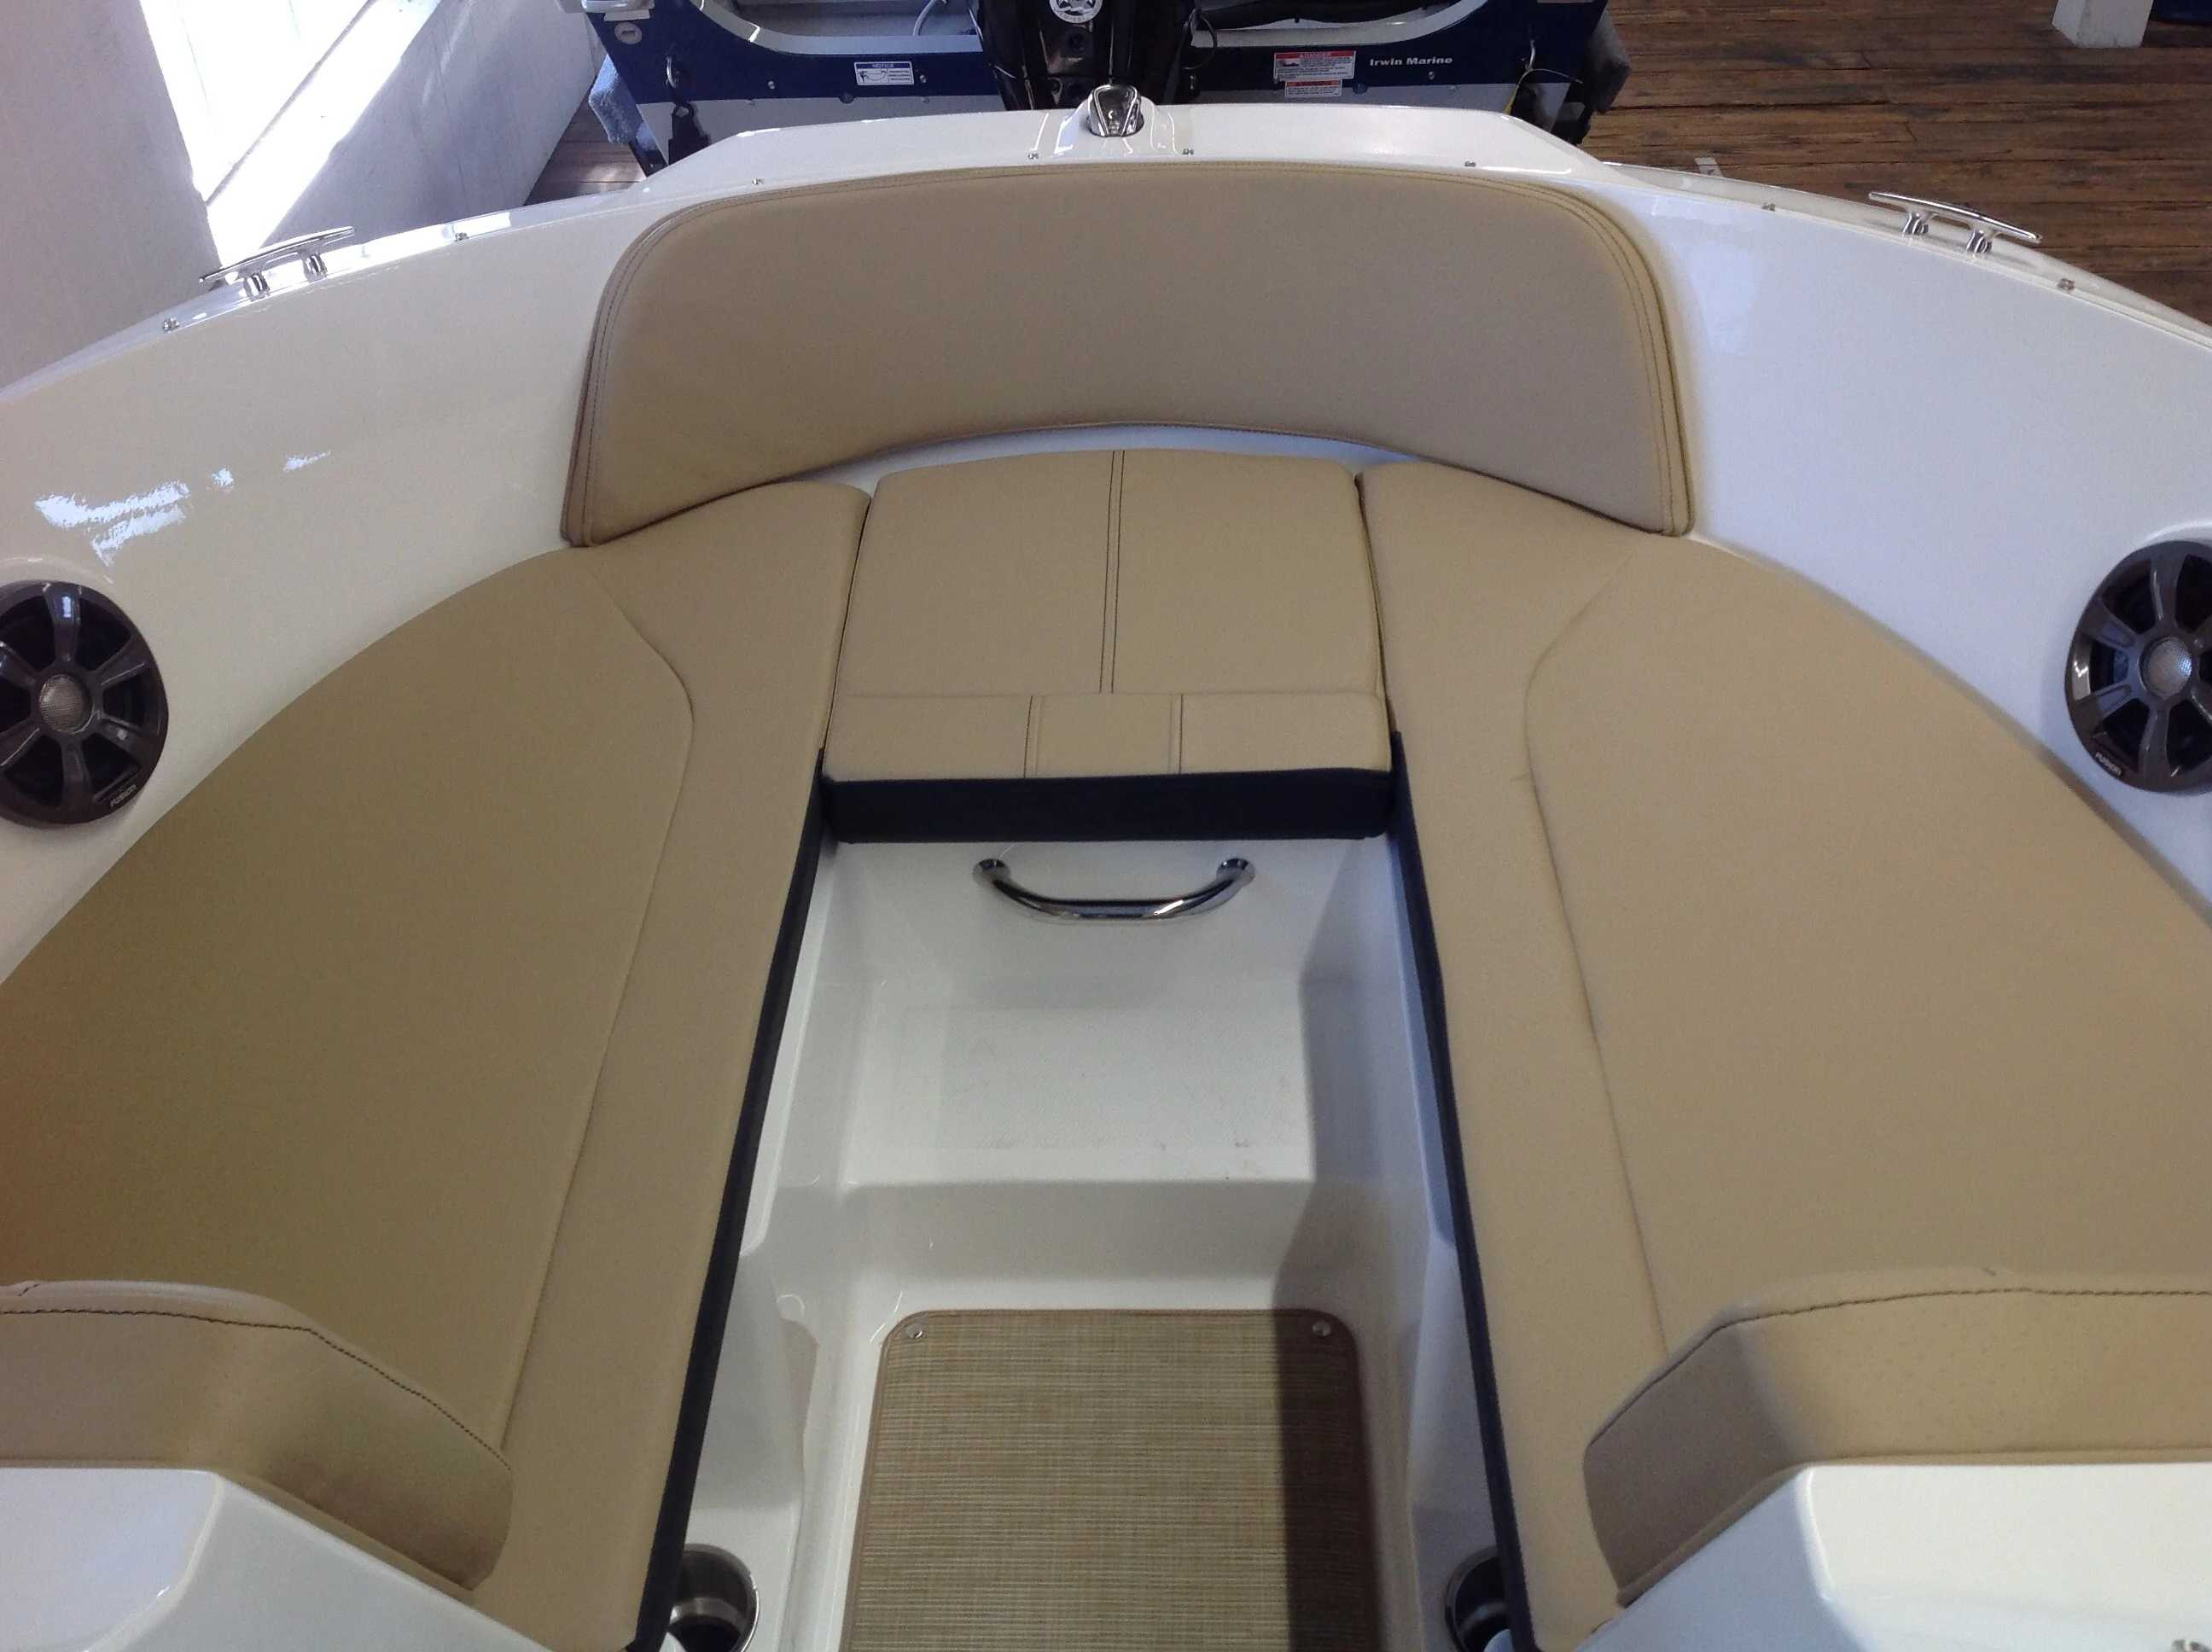 2021 Sea Ray boat for sale, model of the boat is 190 spxo & Image # 6 of 14